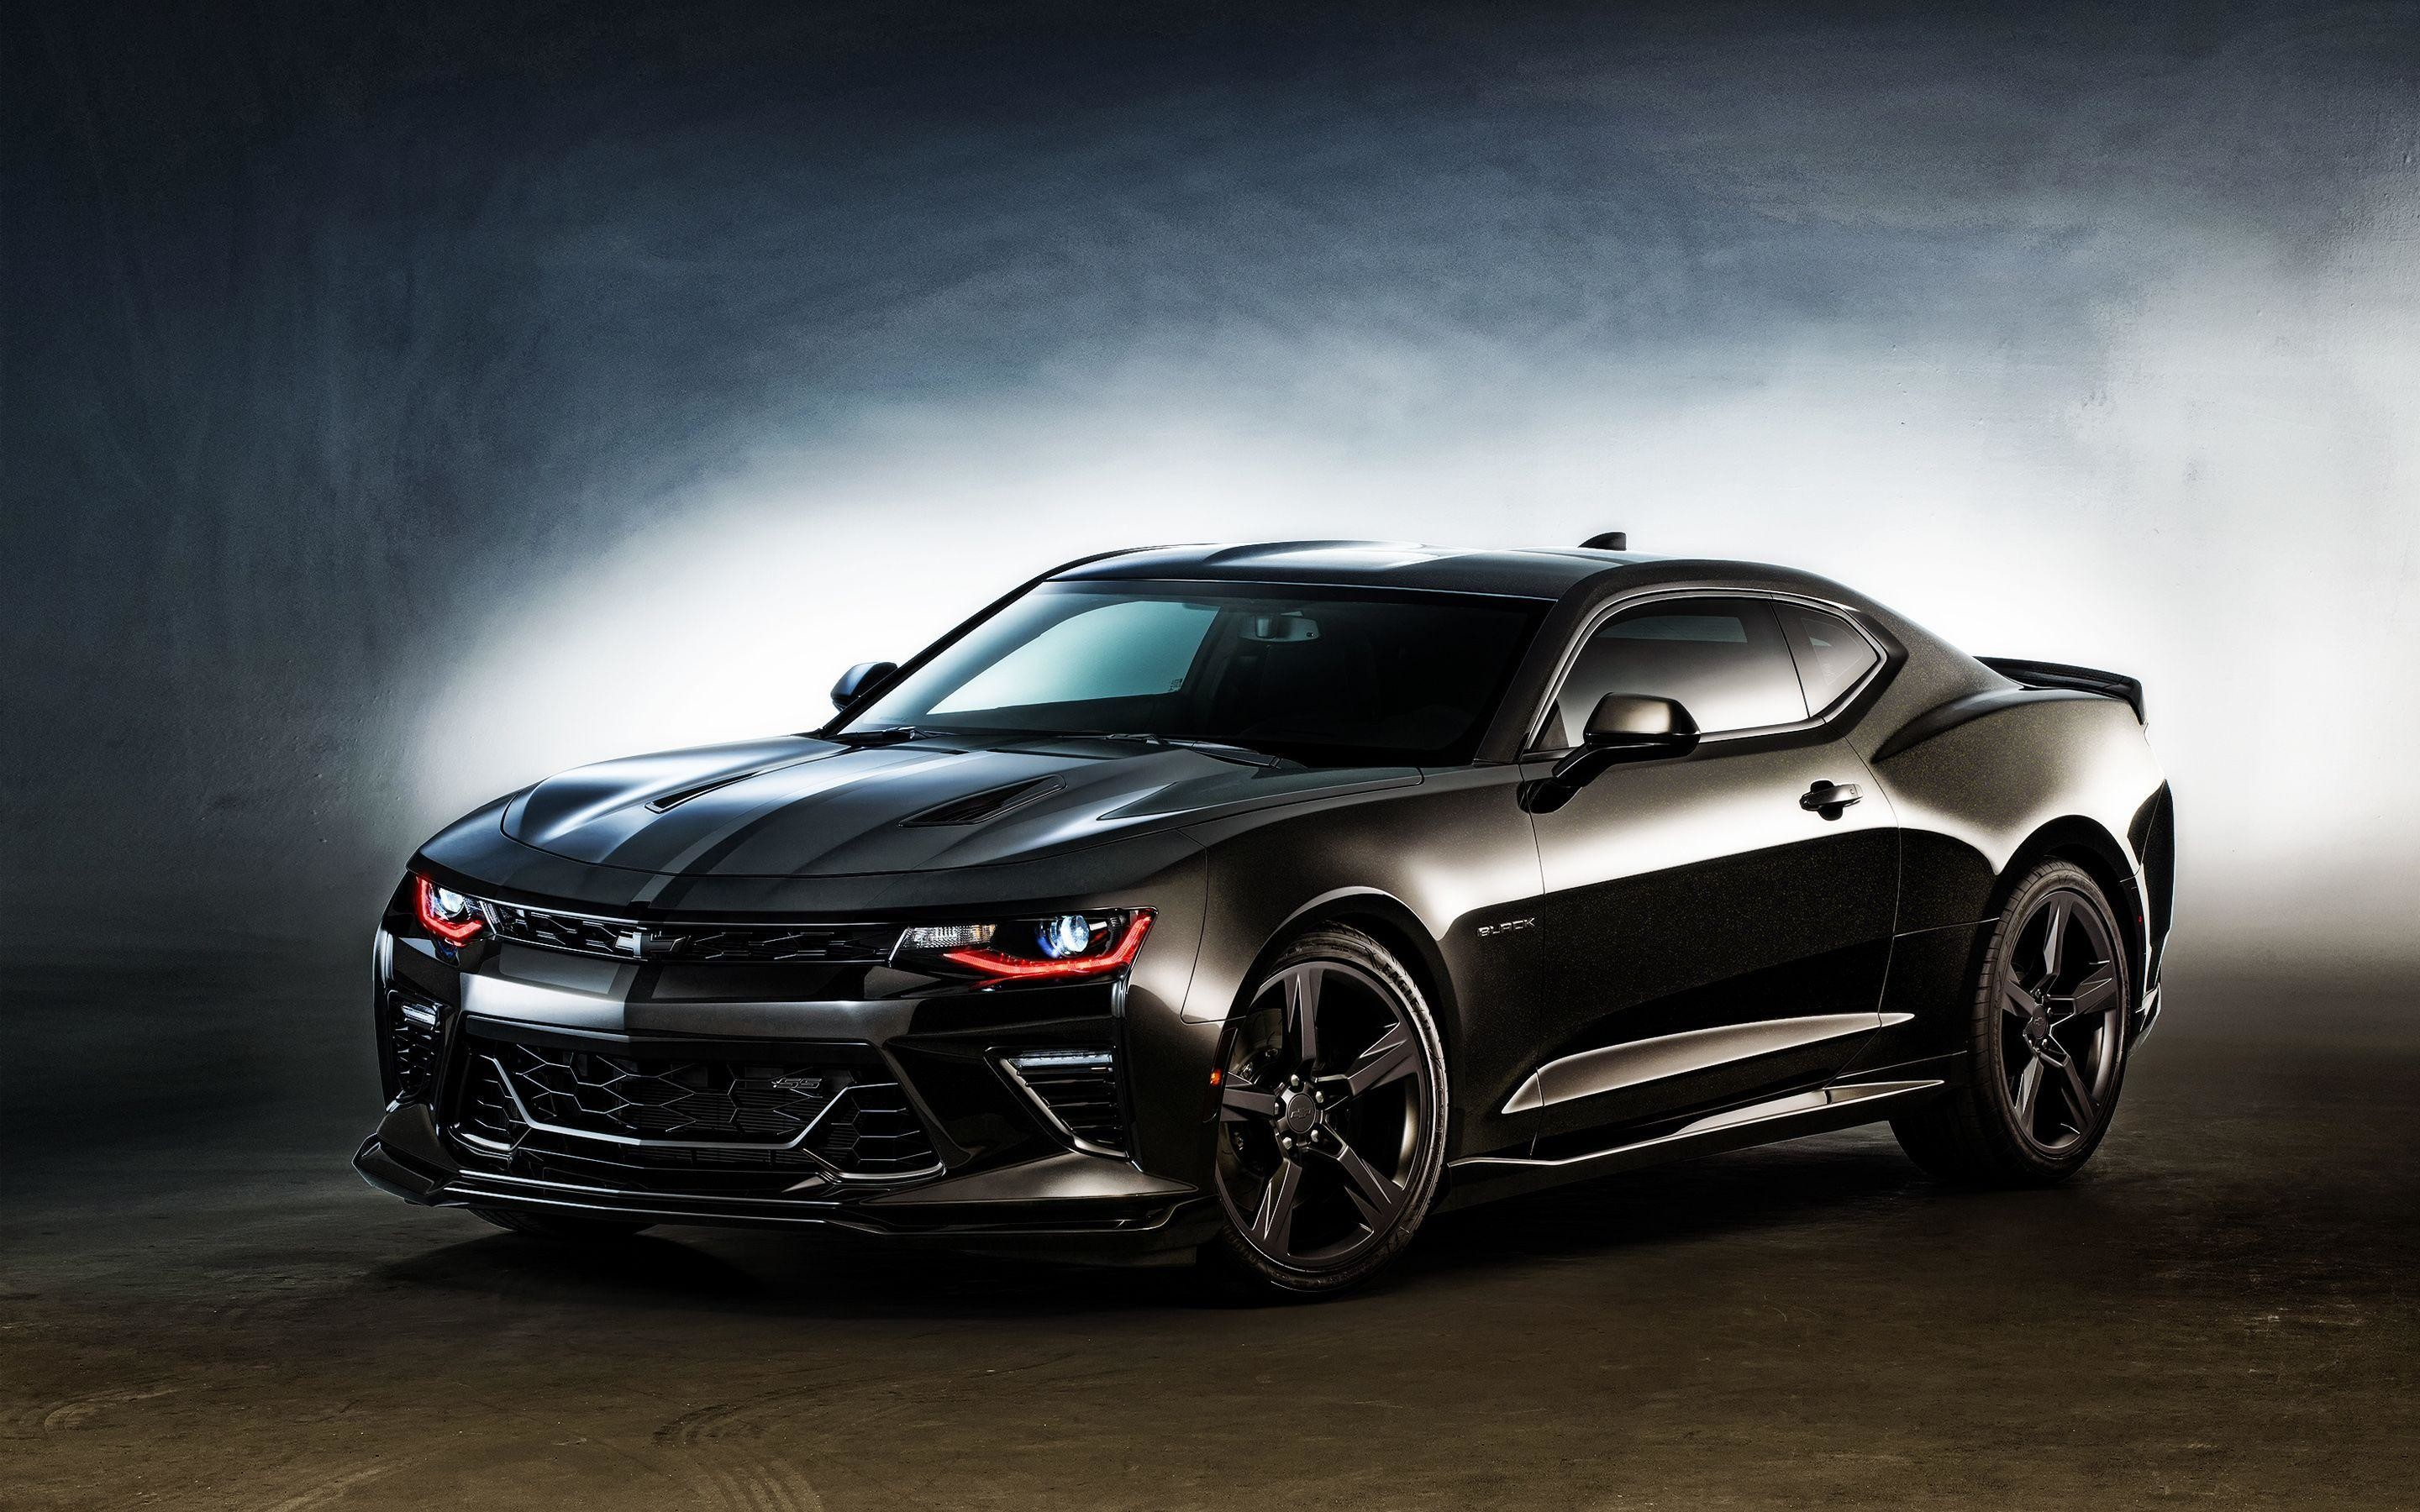 Res: 2880x1800, Wallpapers Tagged With CAMARO | CAMARO Car Wallpapers, Images